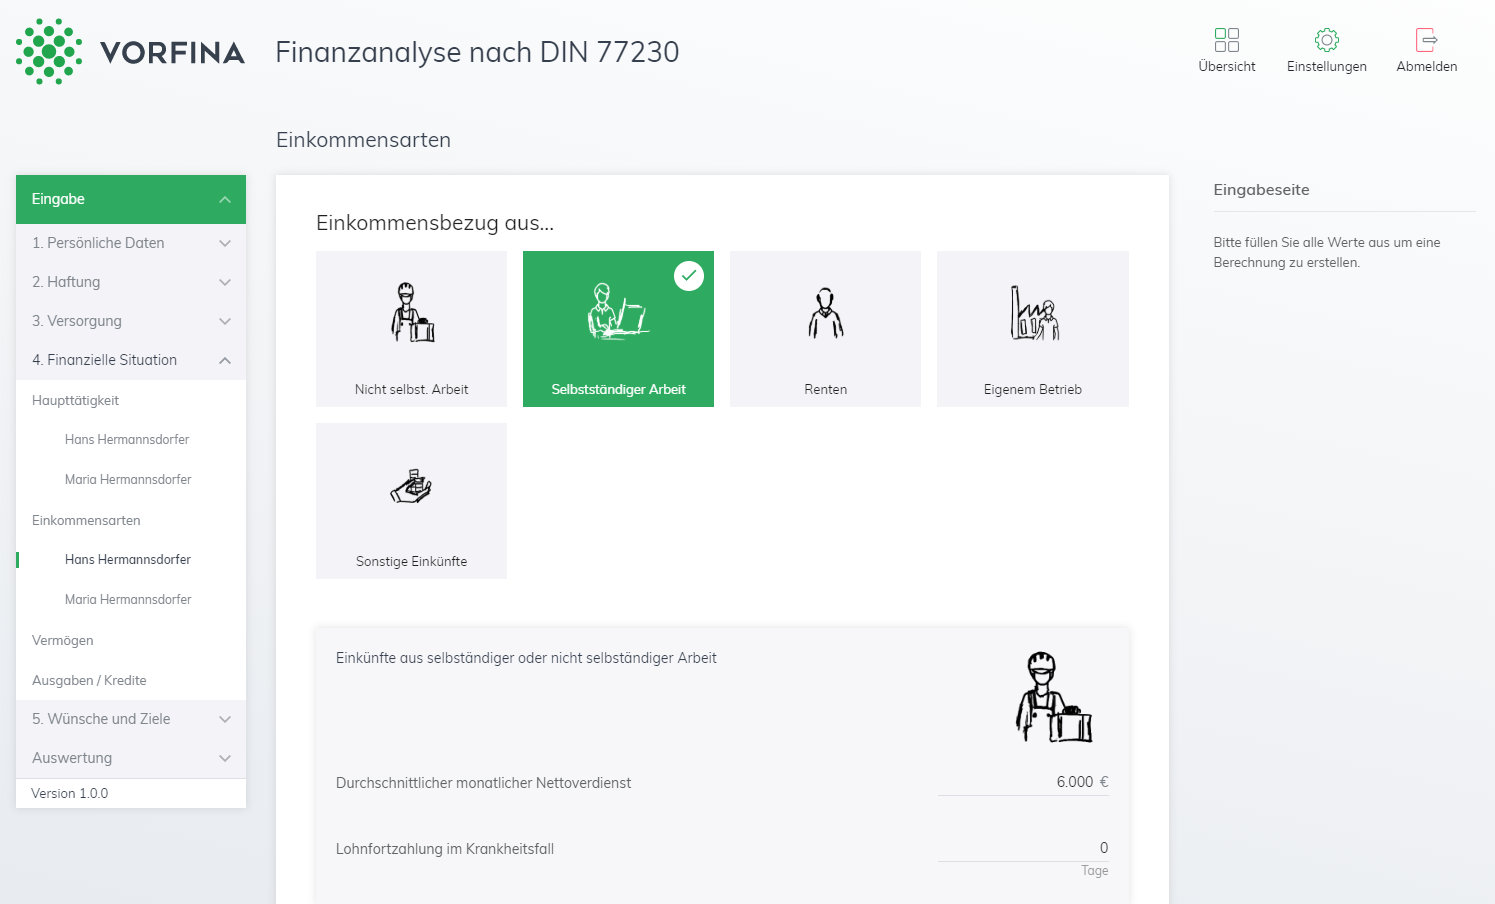 https://www.dinanalyse.de/wp-content/uploads/sites/3/2019/06/Kachel_4_Einkommensarten@2x.jpg